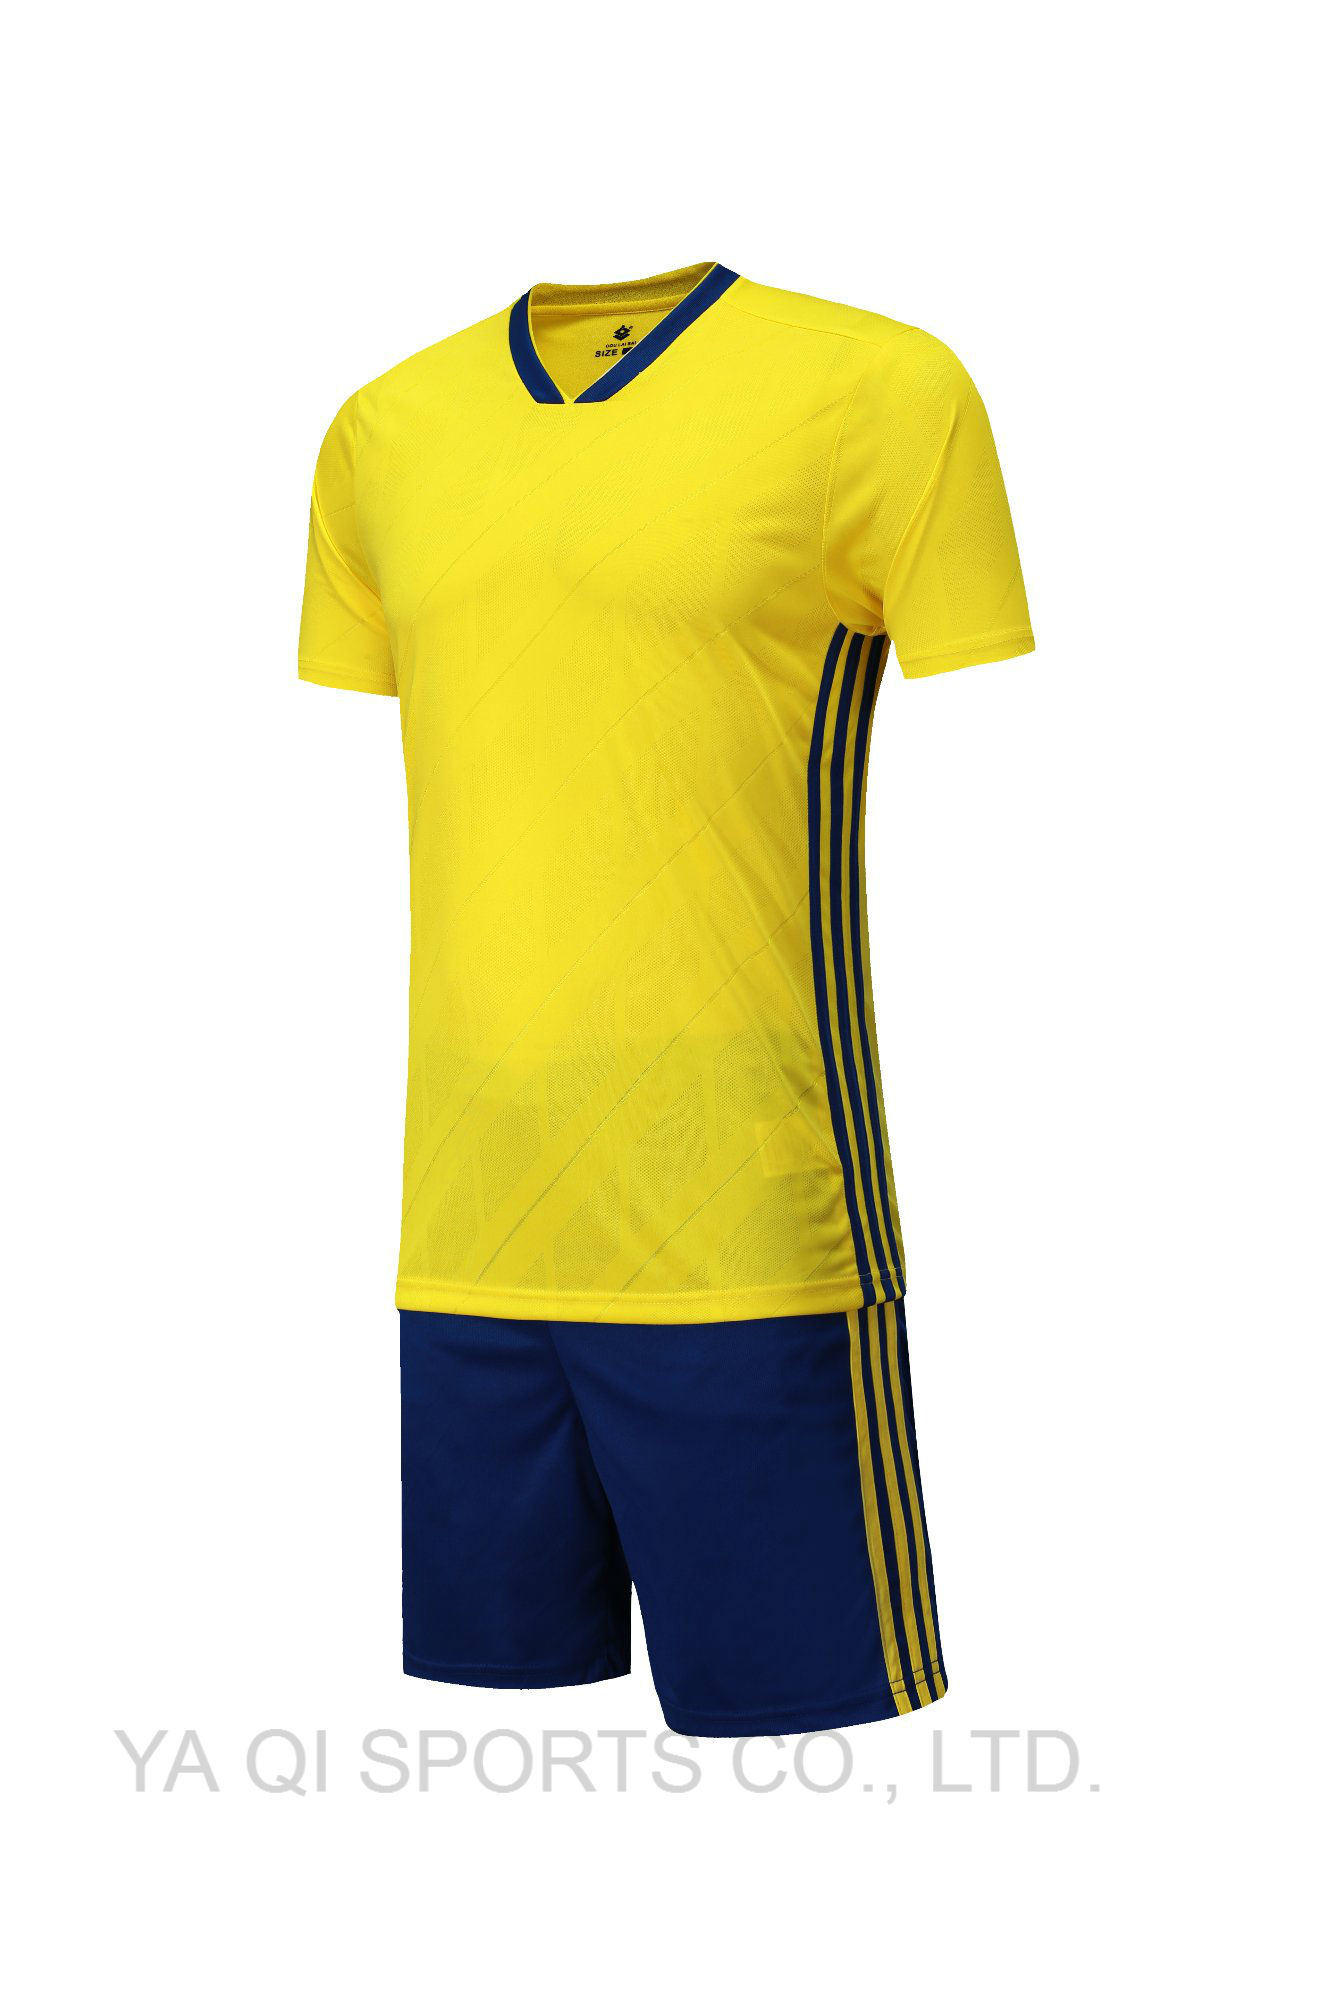 separation shoes dff1a b65e4 [Hot Item] 2018 World Cup Sweden Soccer Jersey 18 Home Yellow Factory  Wholesale